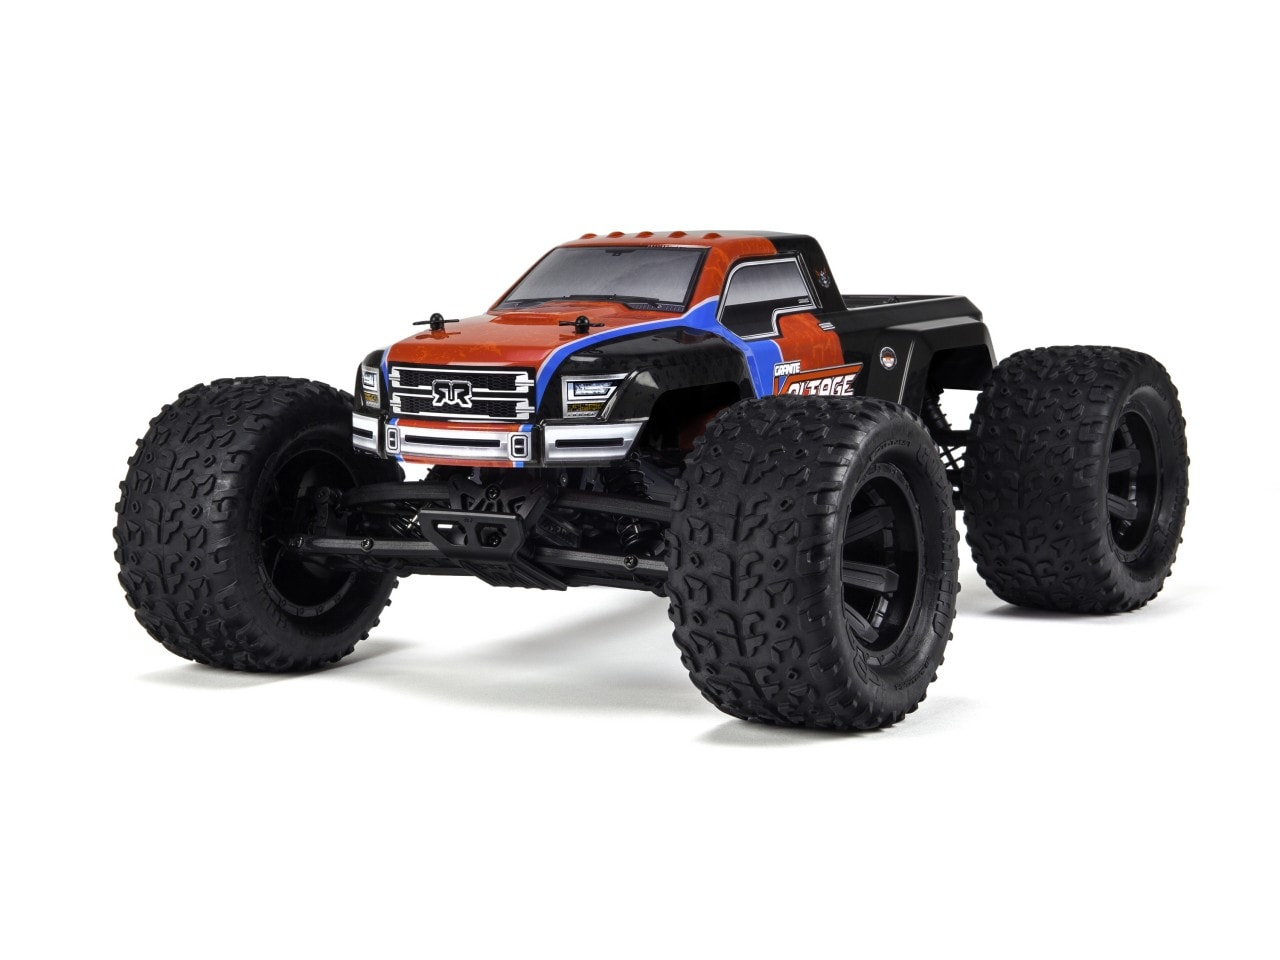 The ARRMA Granite Voltage Mega Brings Big Time RC Bashing on a Budget